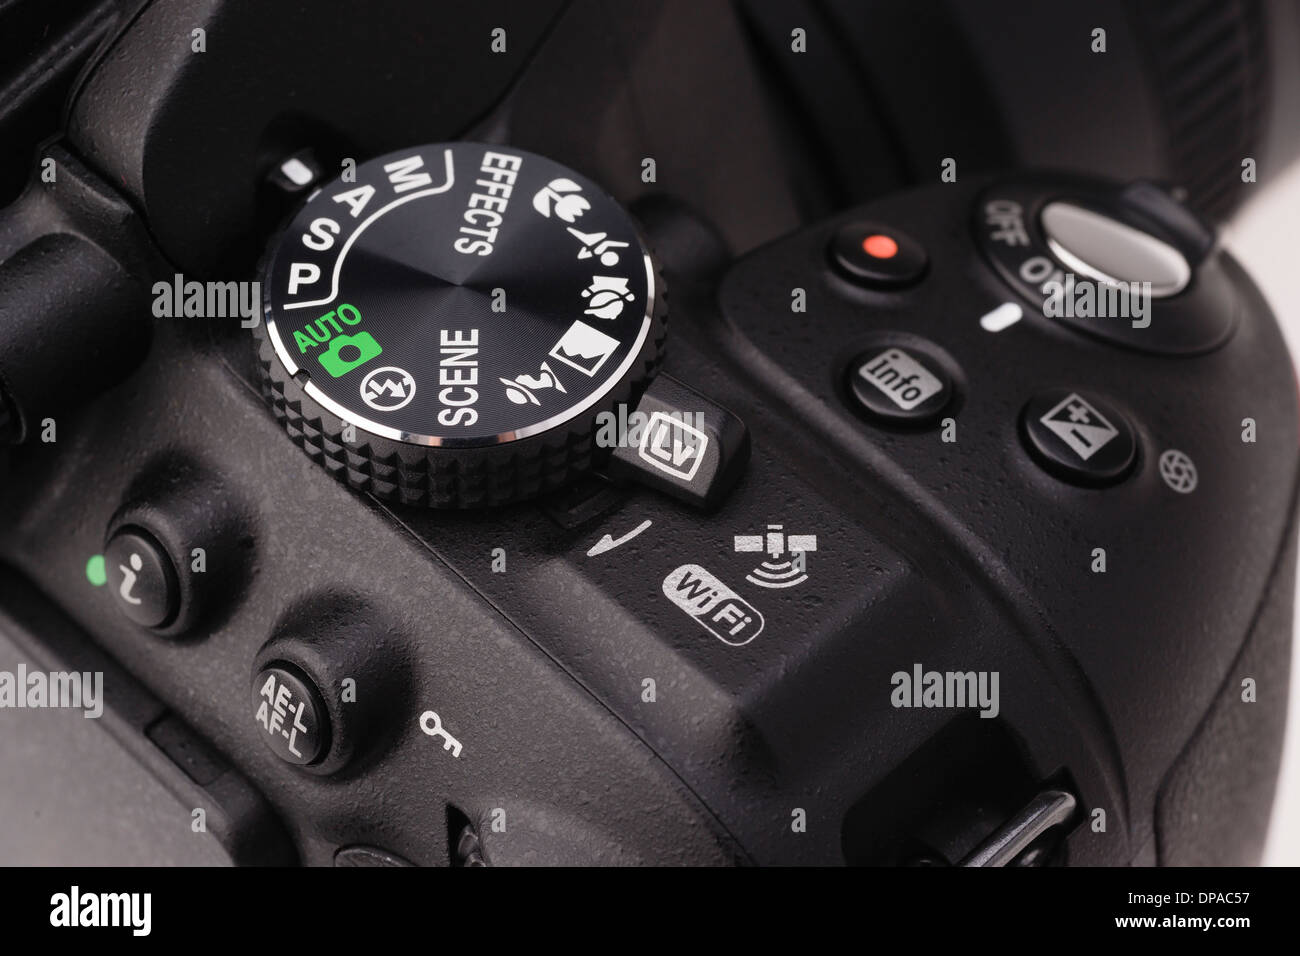 Digital photography equipment - Nikon D5300 control area with WiFi, GPS and movie - Stock Image